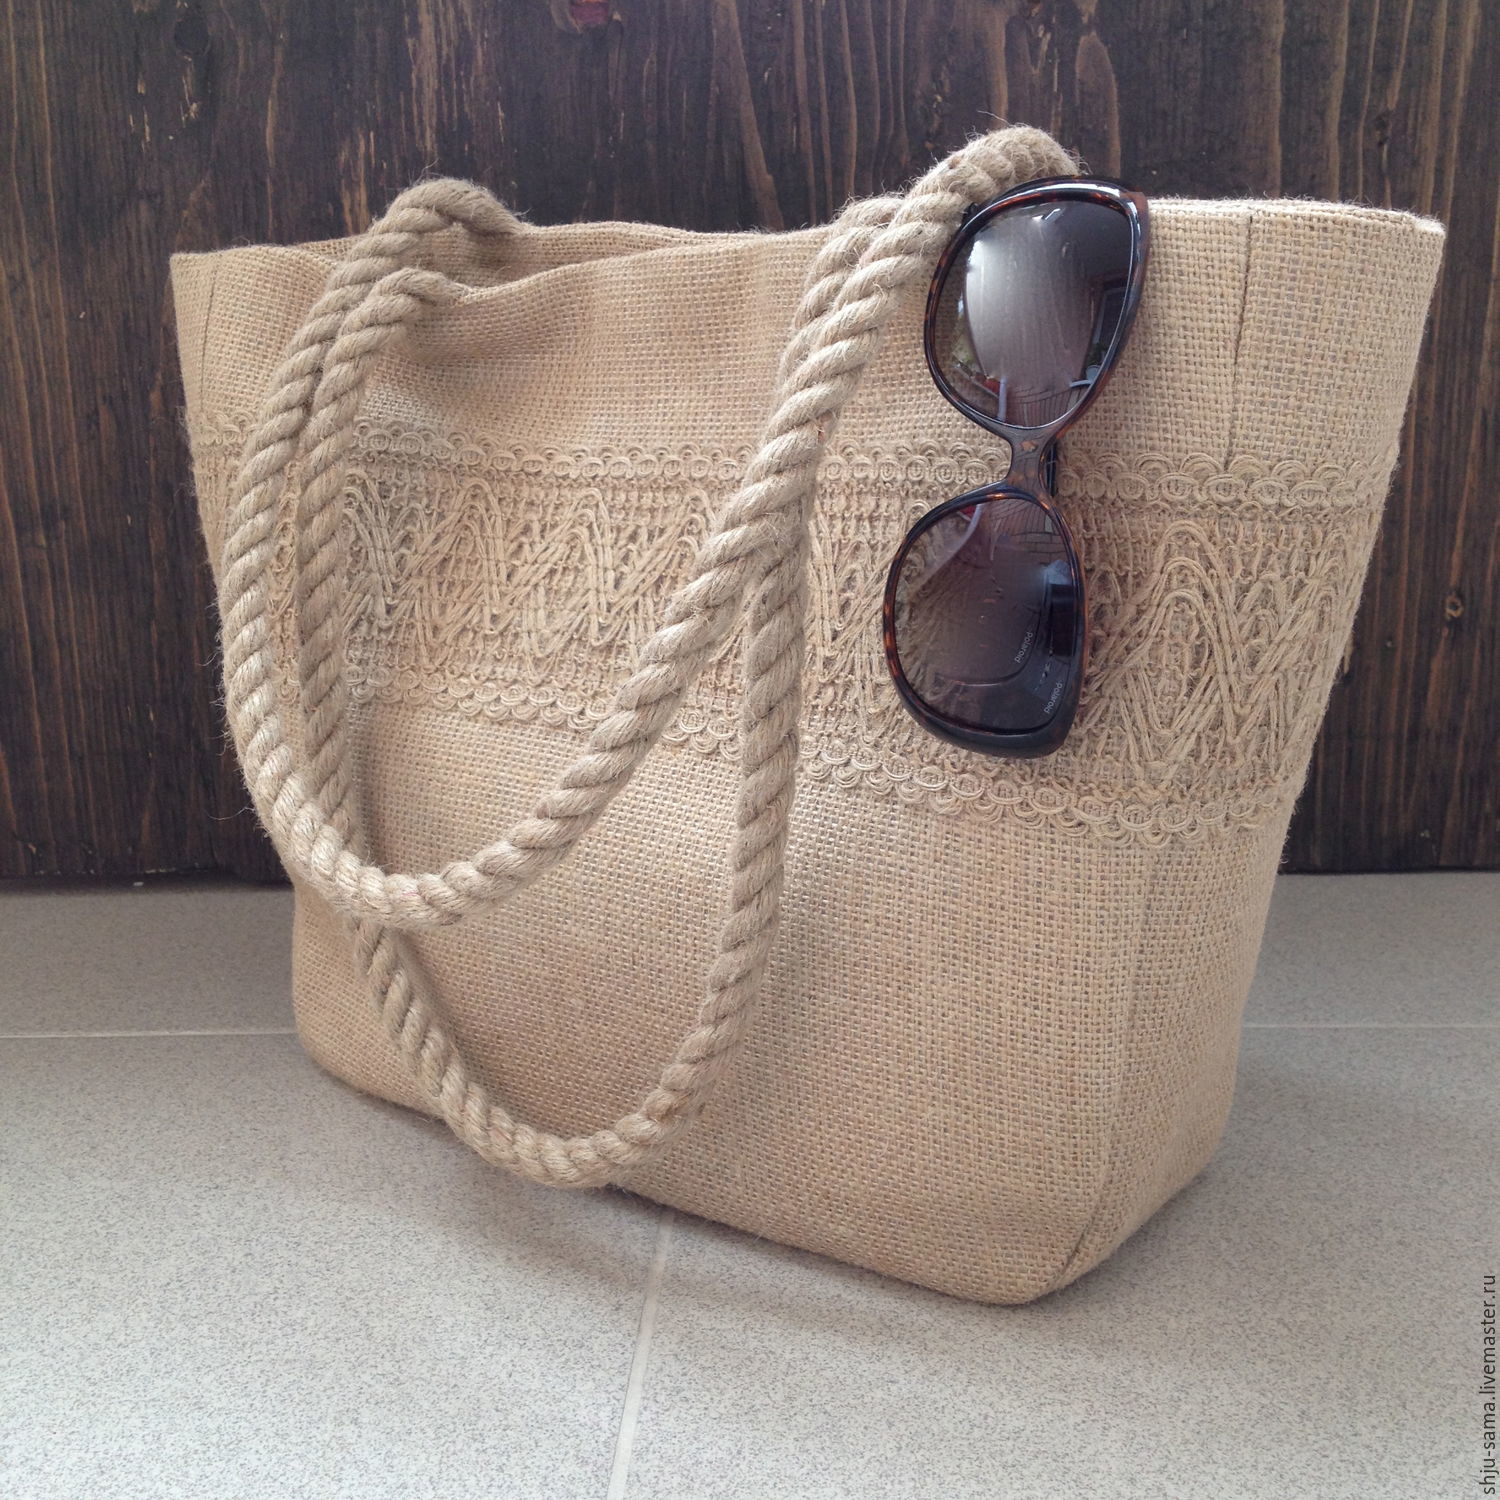 ffad84d5a2d1 Handbags handmade. Livemaster - handmade. Buy Beach bag  Cape town